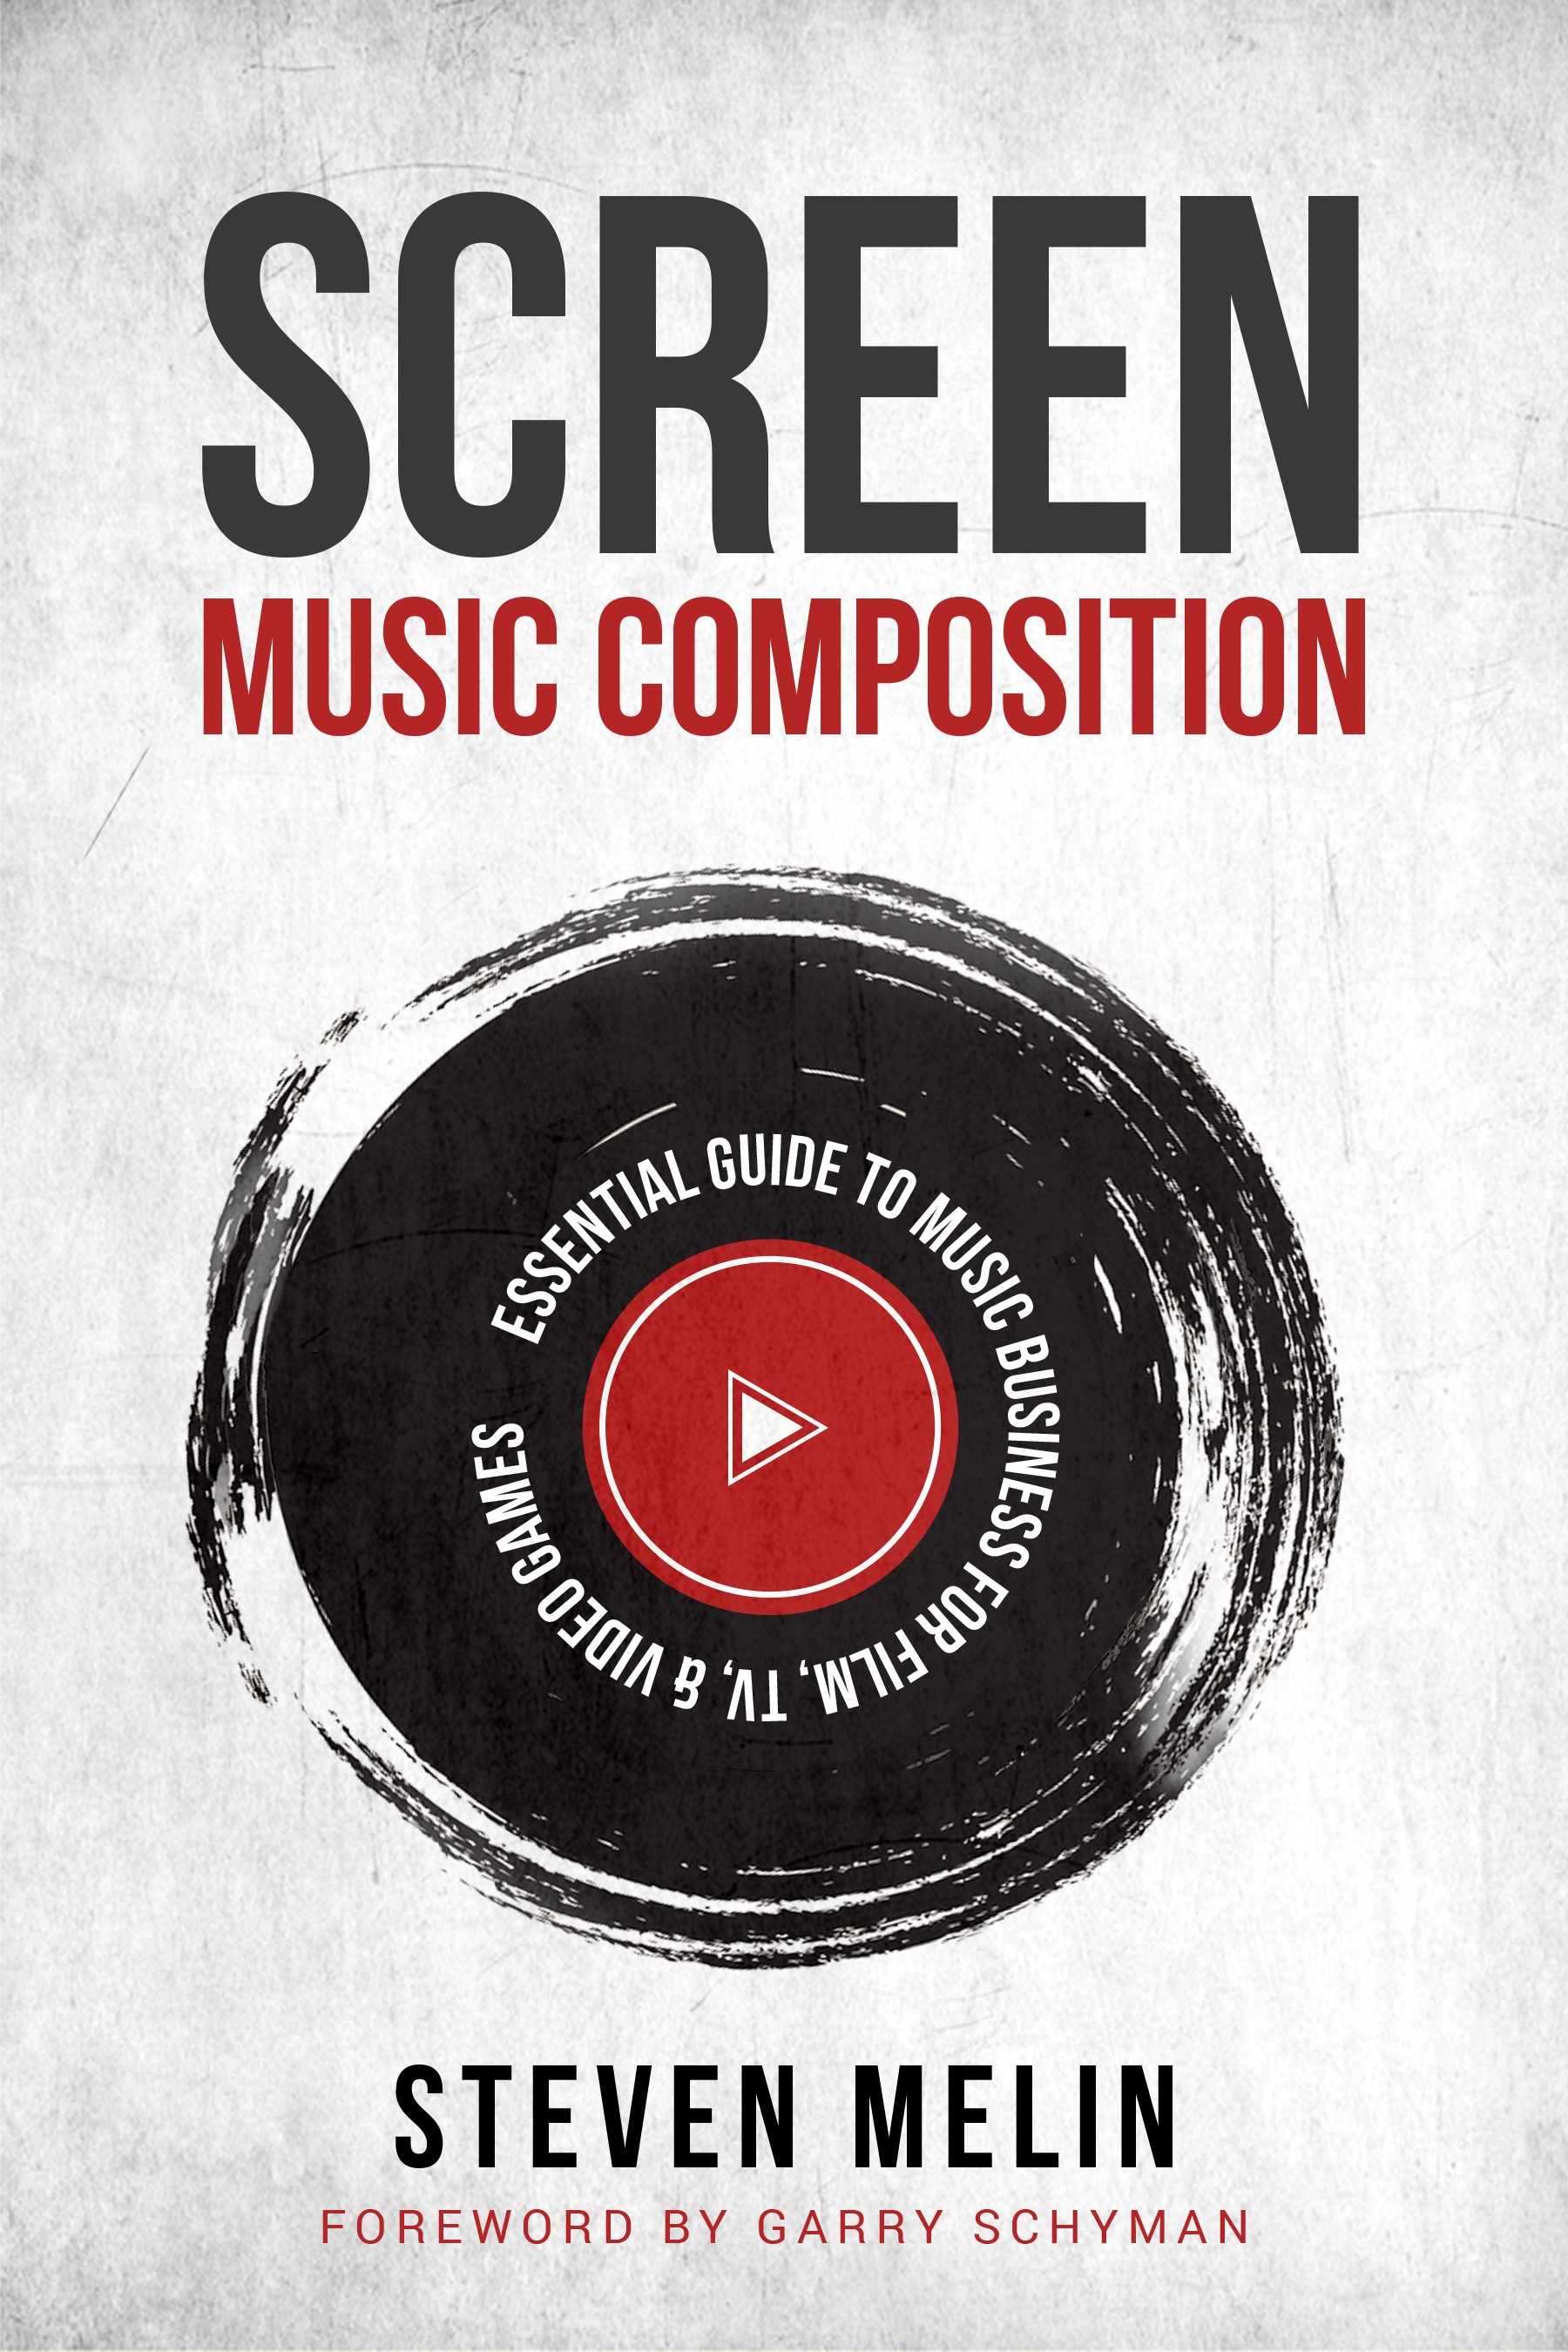 Hand-Drawn Book Cover needed for Screen Music Business Book!